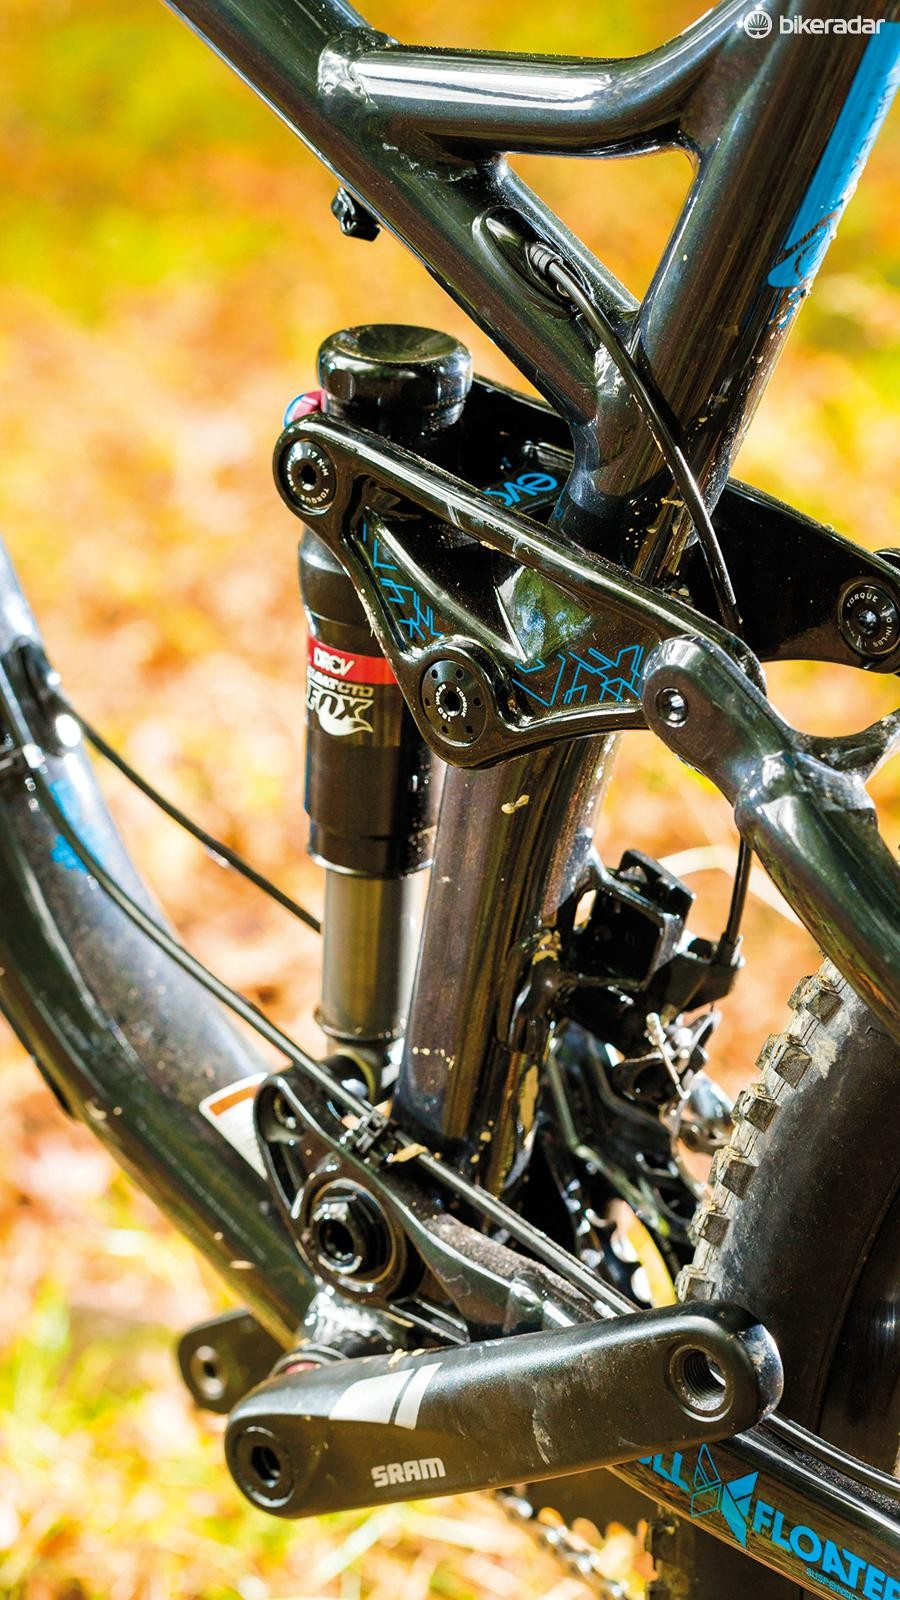 A Fox rear shock gets DRCV technology for a deep and plush feel